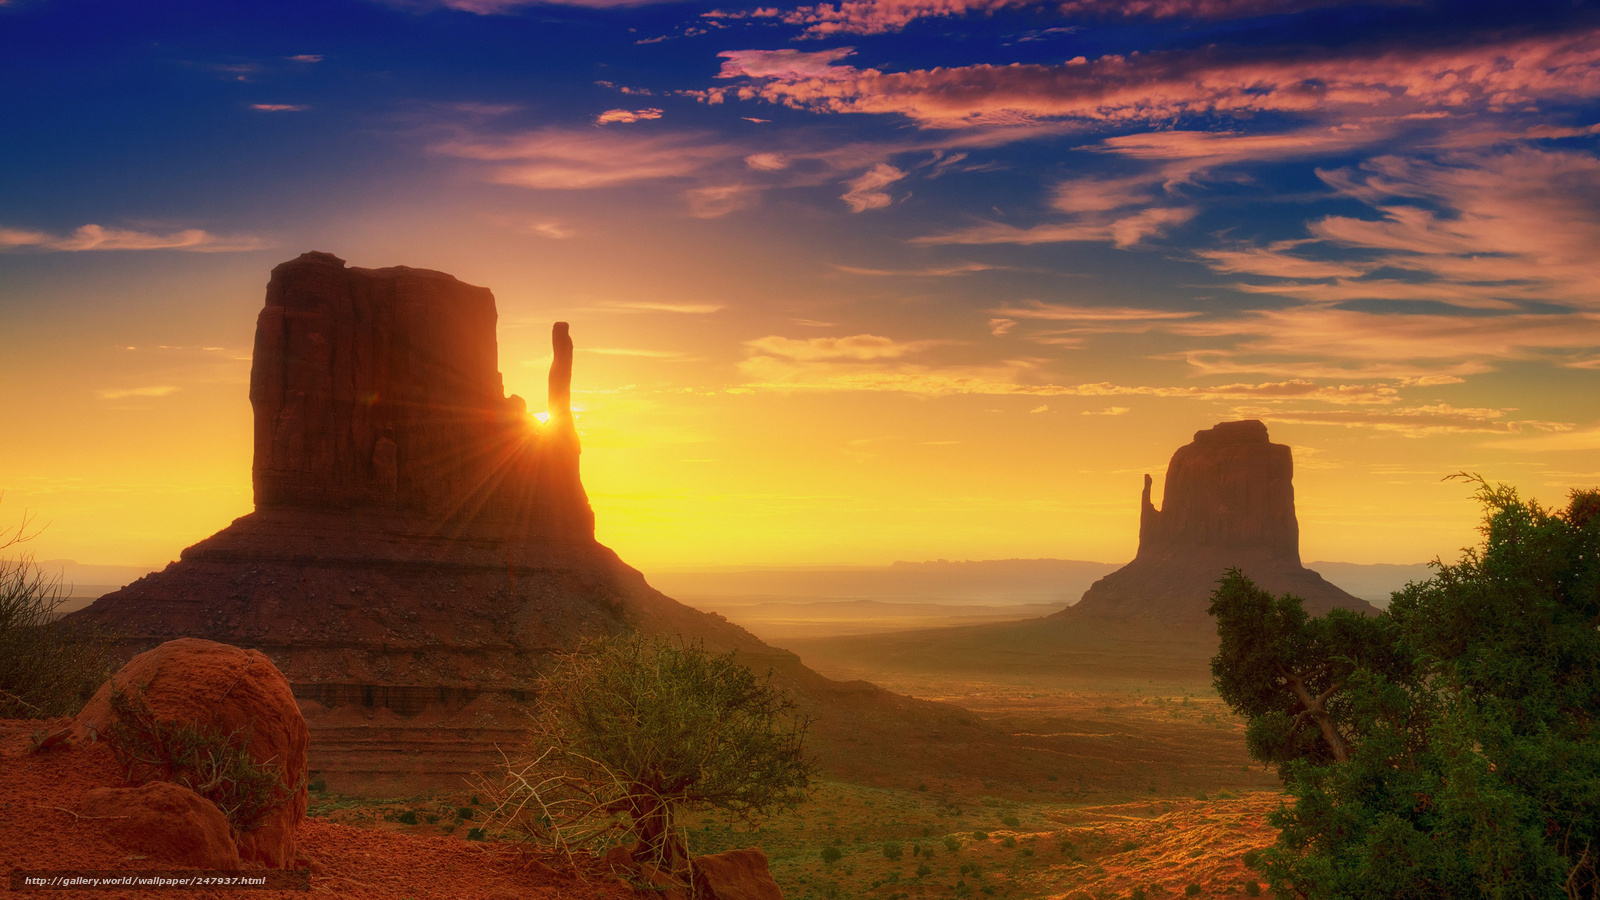 download wallpaper monument valley utah dawn rays free